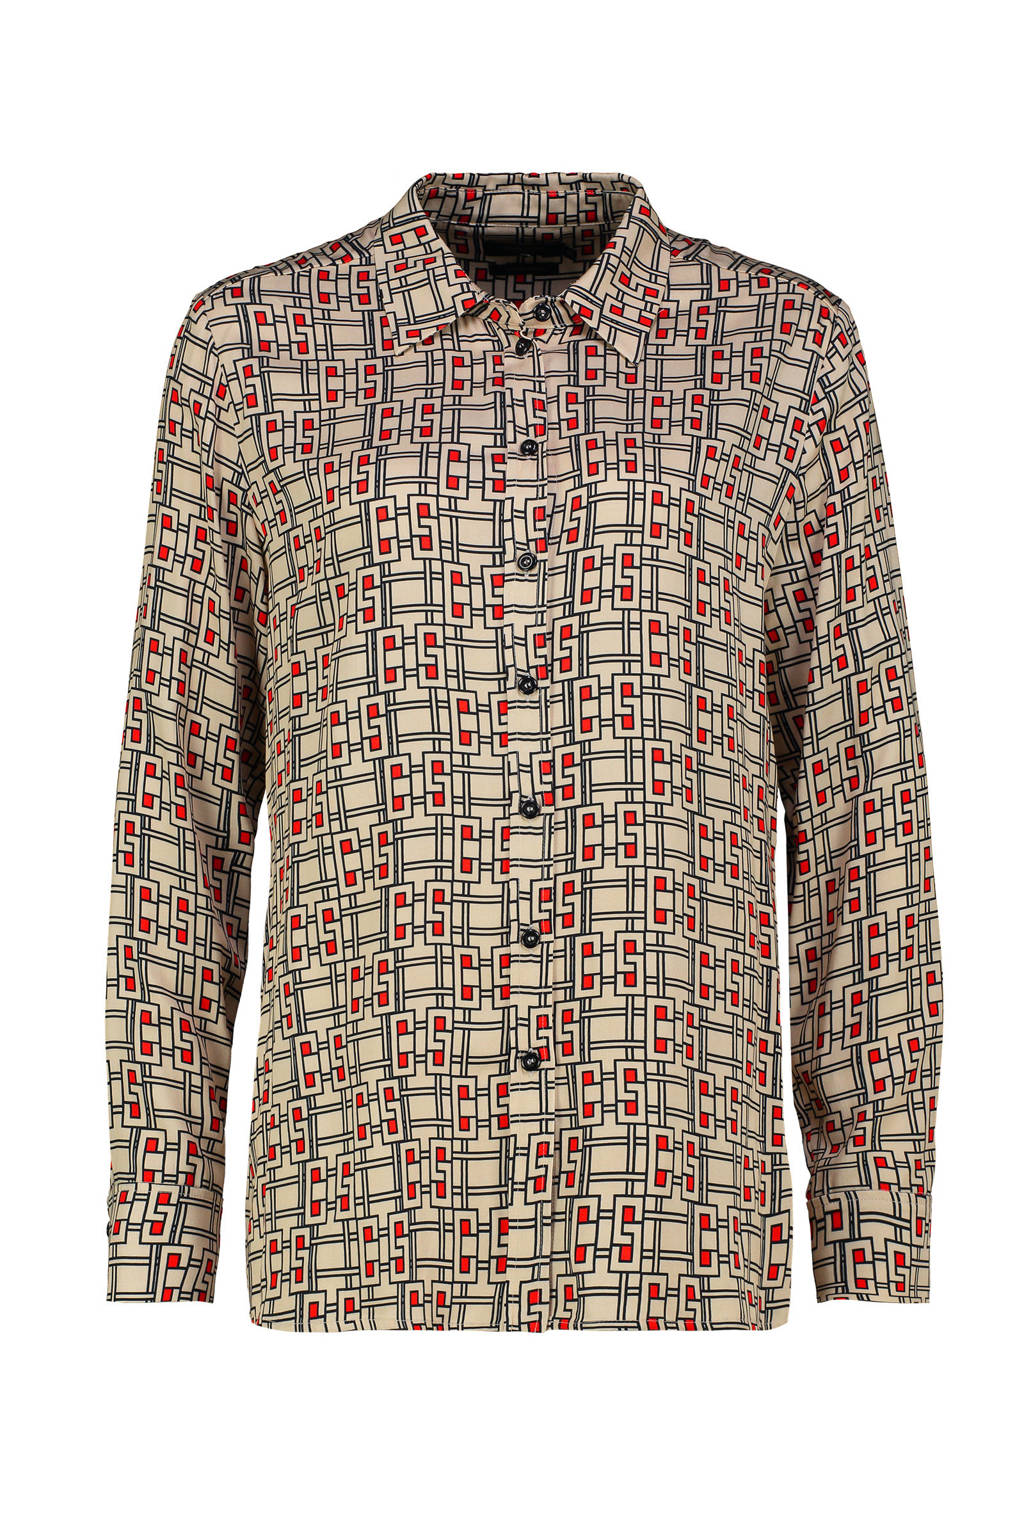 Claudia Sträter blouse met all over print zand/rood